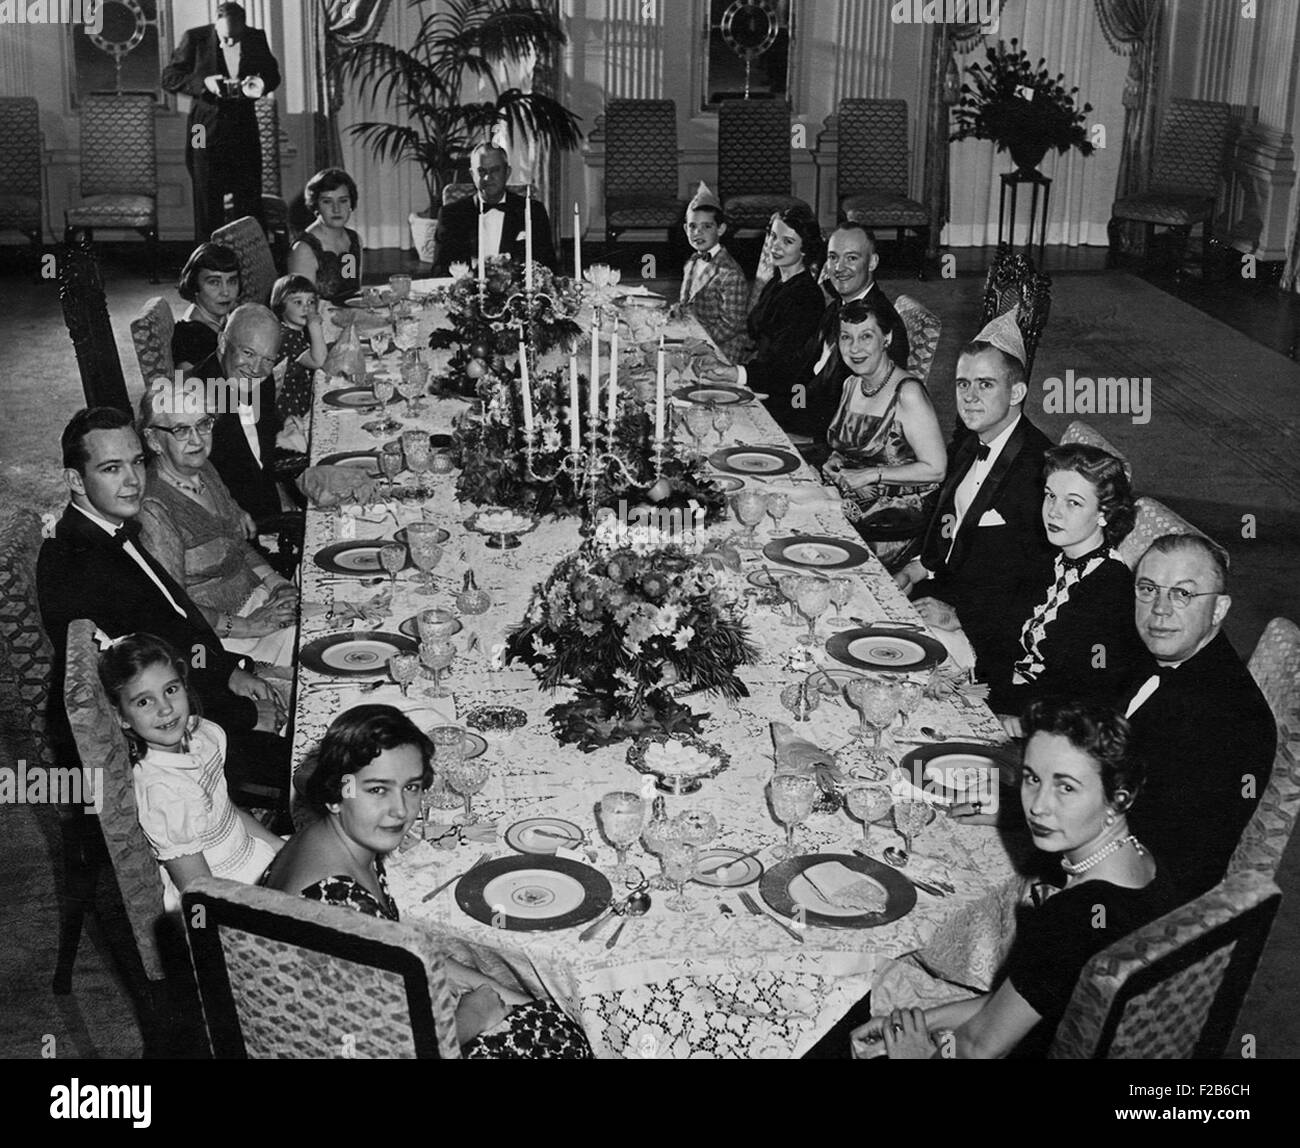 Mamie Eisenhower Has A Big Family Dinner At The White House On Her  Birthday. Nov. 14, 1956. President Eisenhoweru0027s Election Victory Eight Days  Earlier Added ...